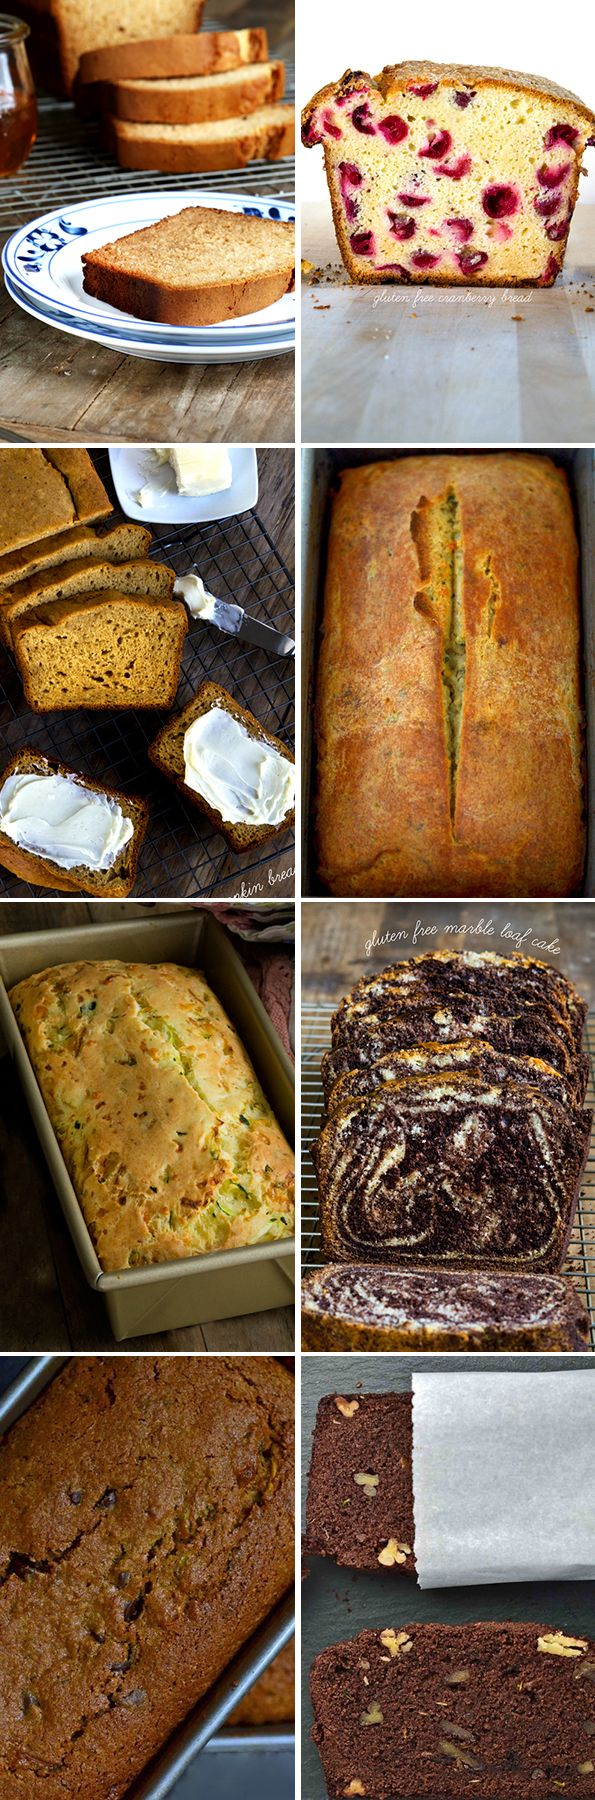 Get these 8 tested recipes for gluten free quick breads - both savory and sweet. Bake your heart out!